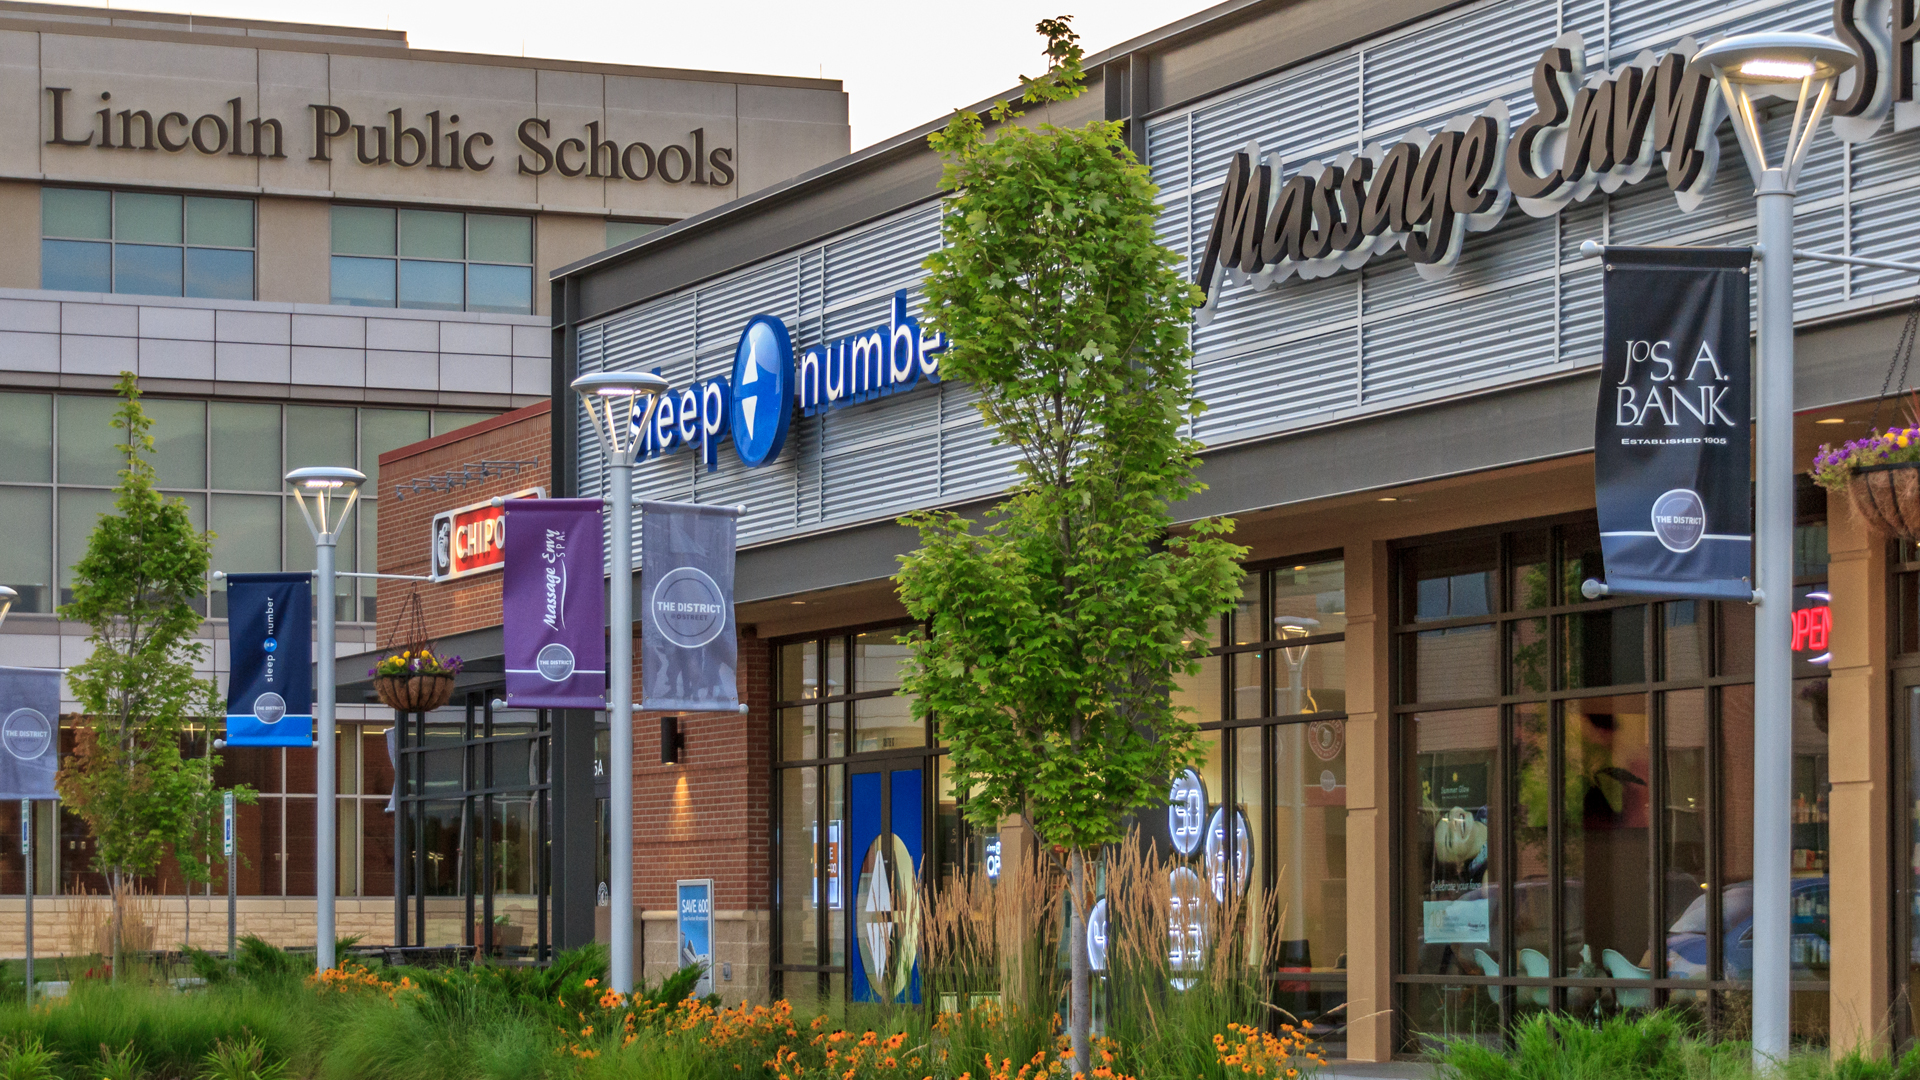 <p>After fire destroyed the former Lincoln Public School headquarters, the school board selected Continuum Partners to help turn the seven-acre site into a new mixed-use development.</p>